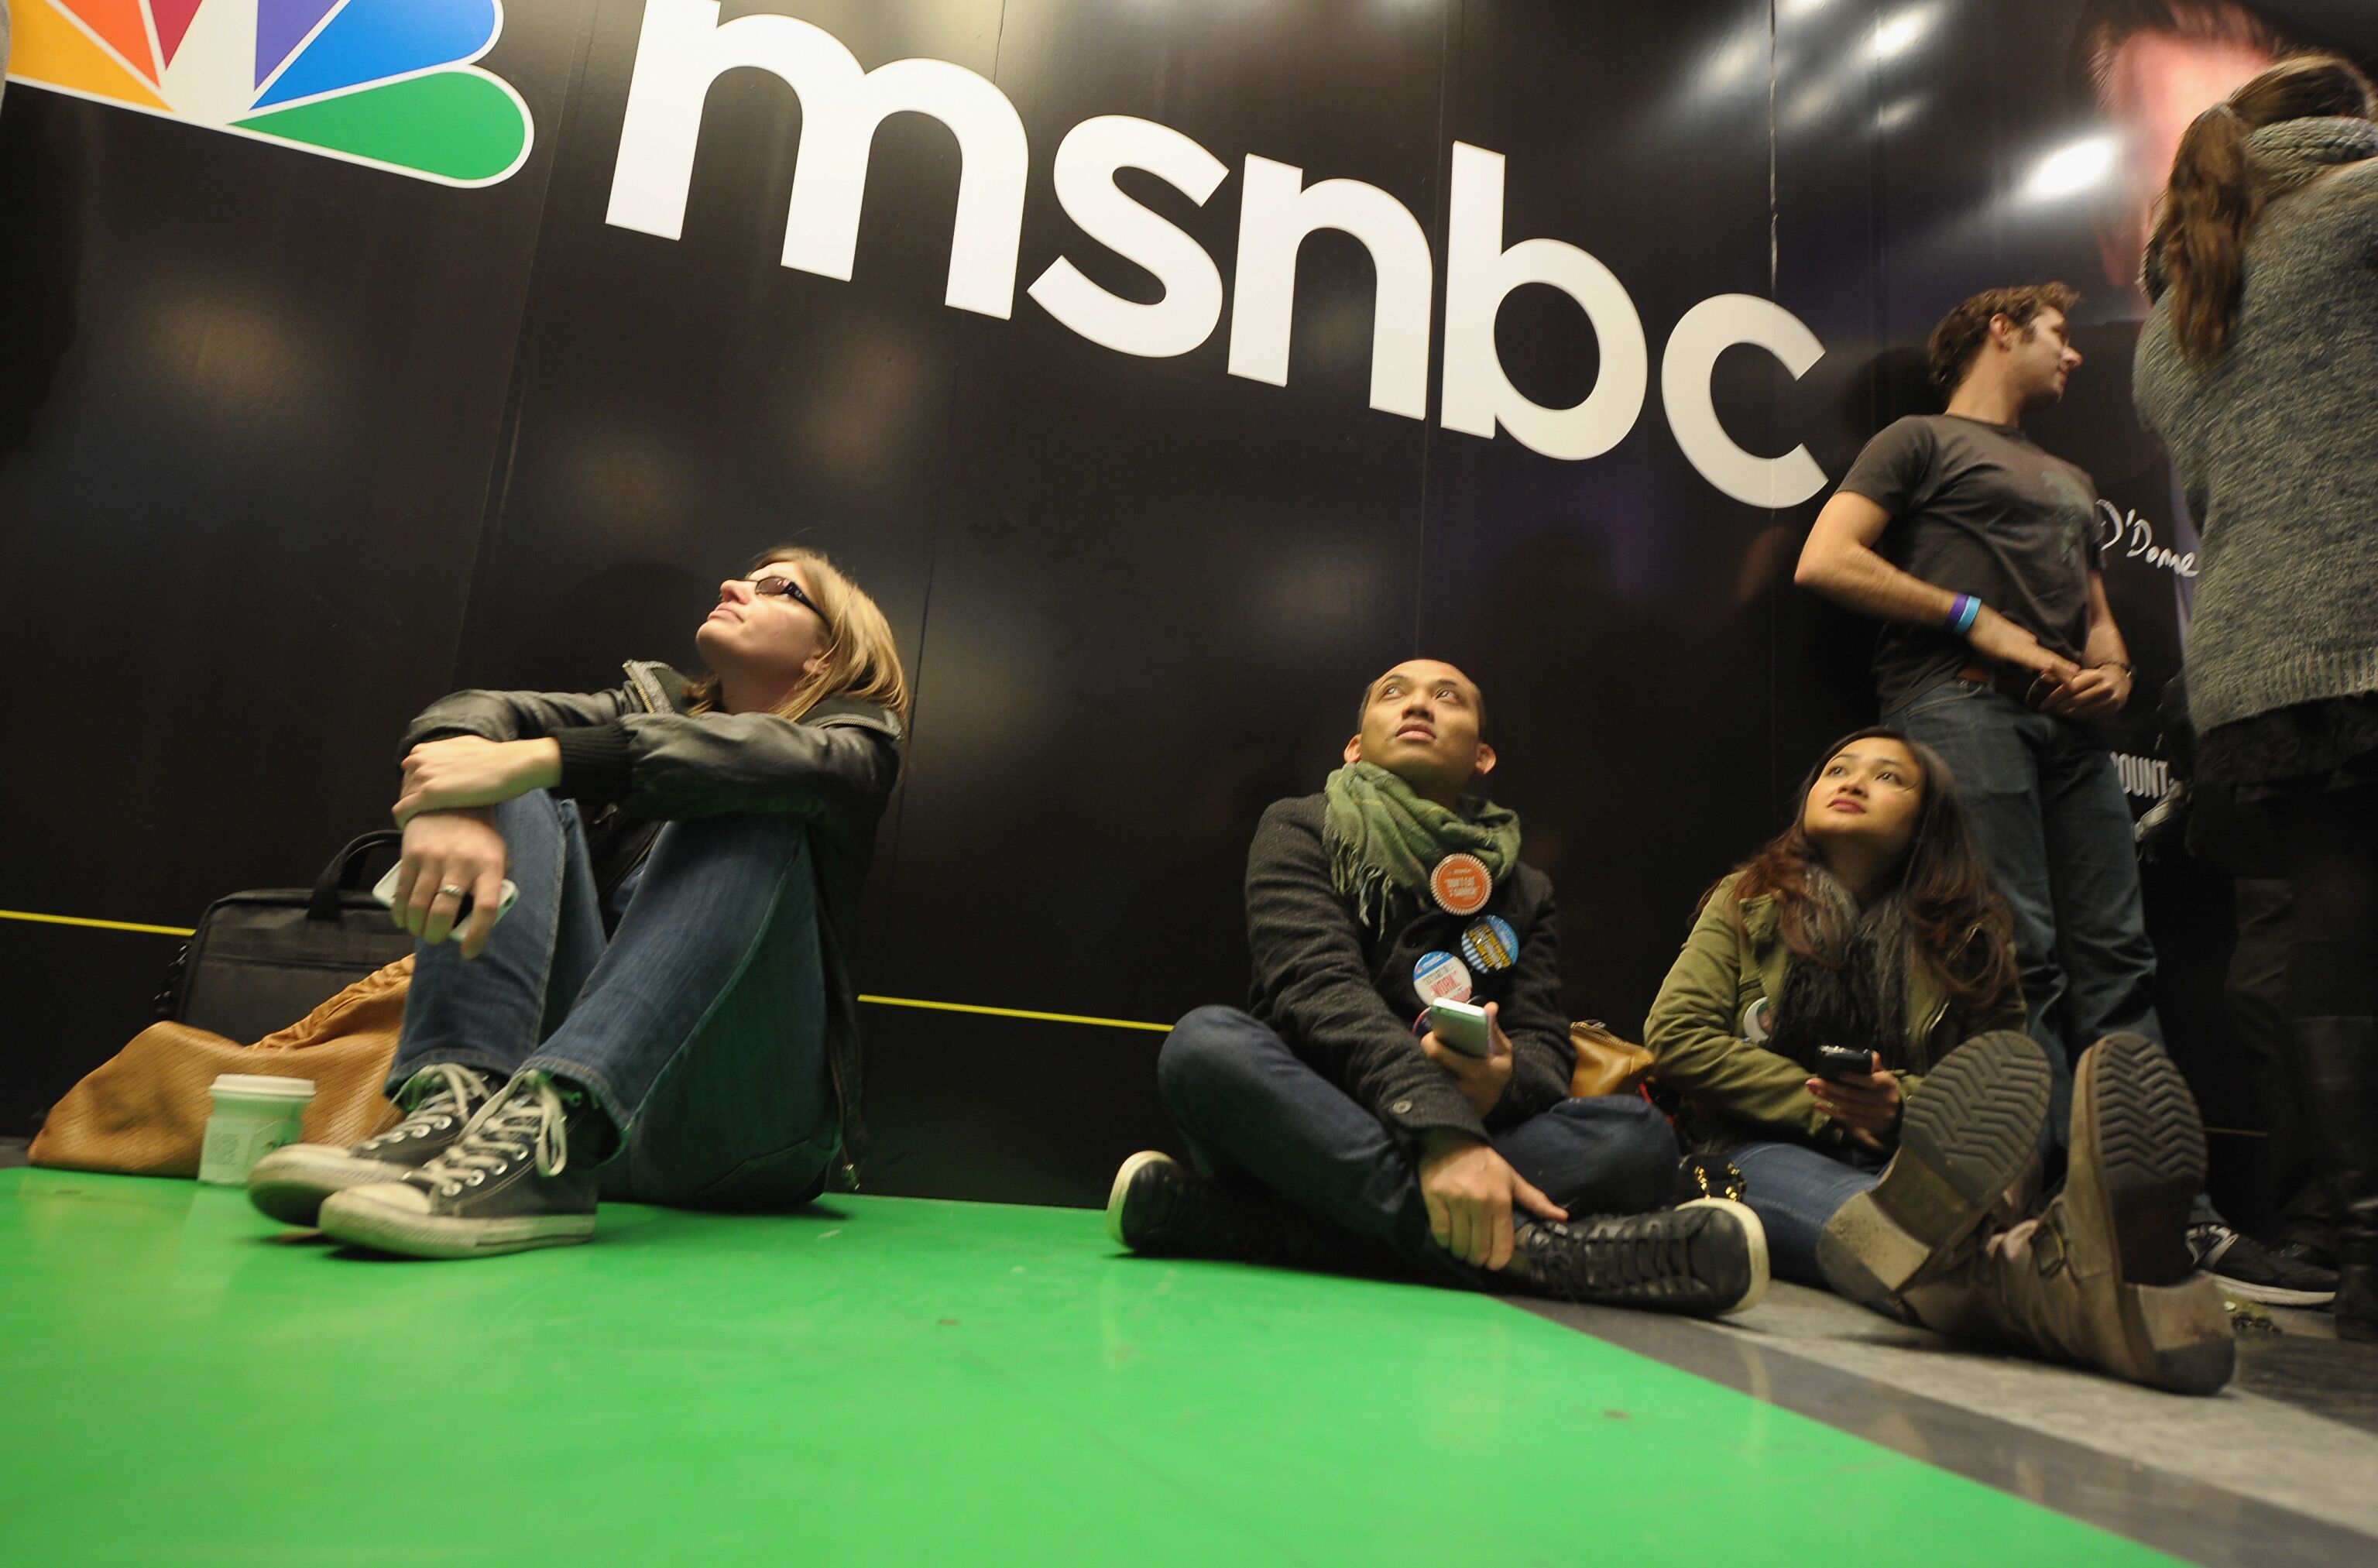 Winter Olympics 2018: What channel is MSNBC on my provider?